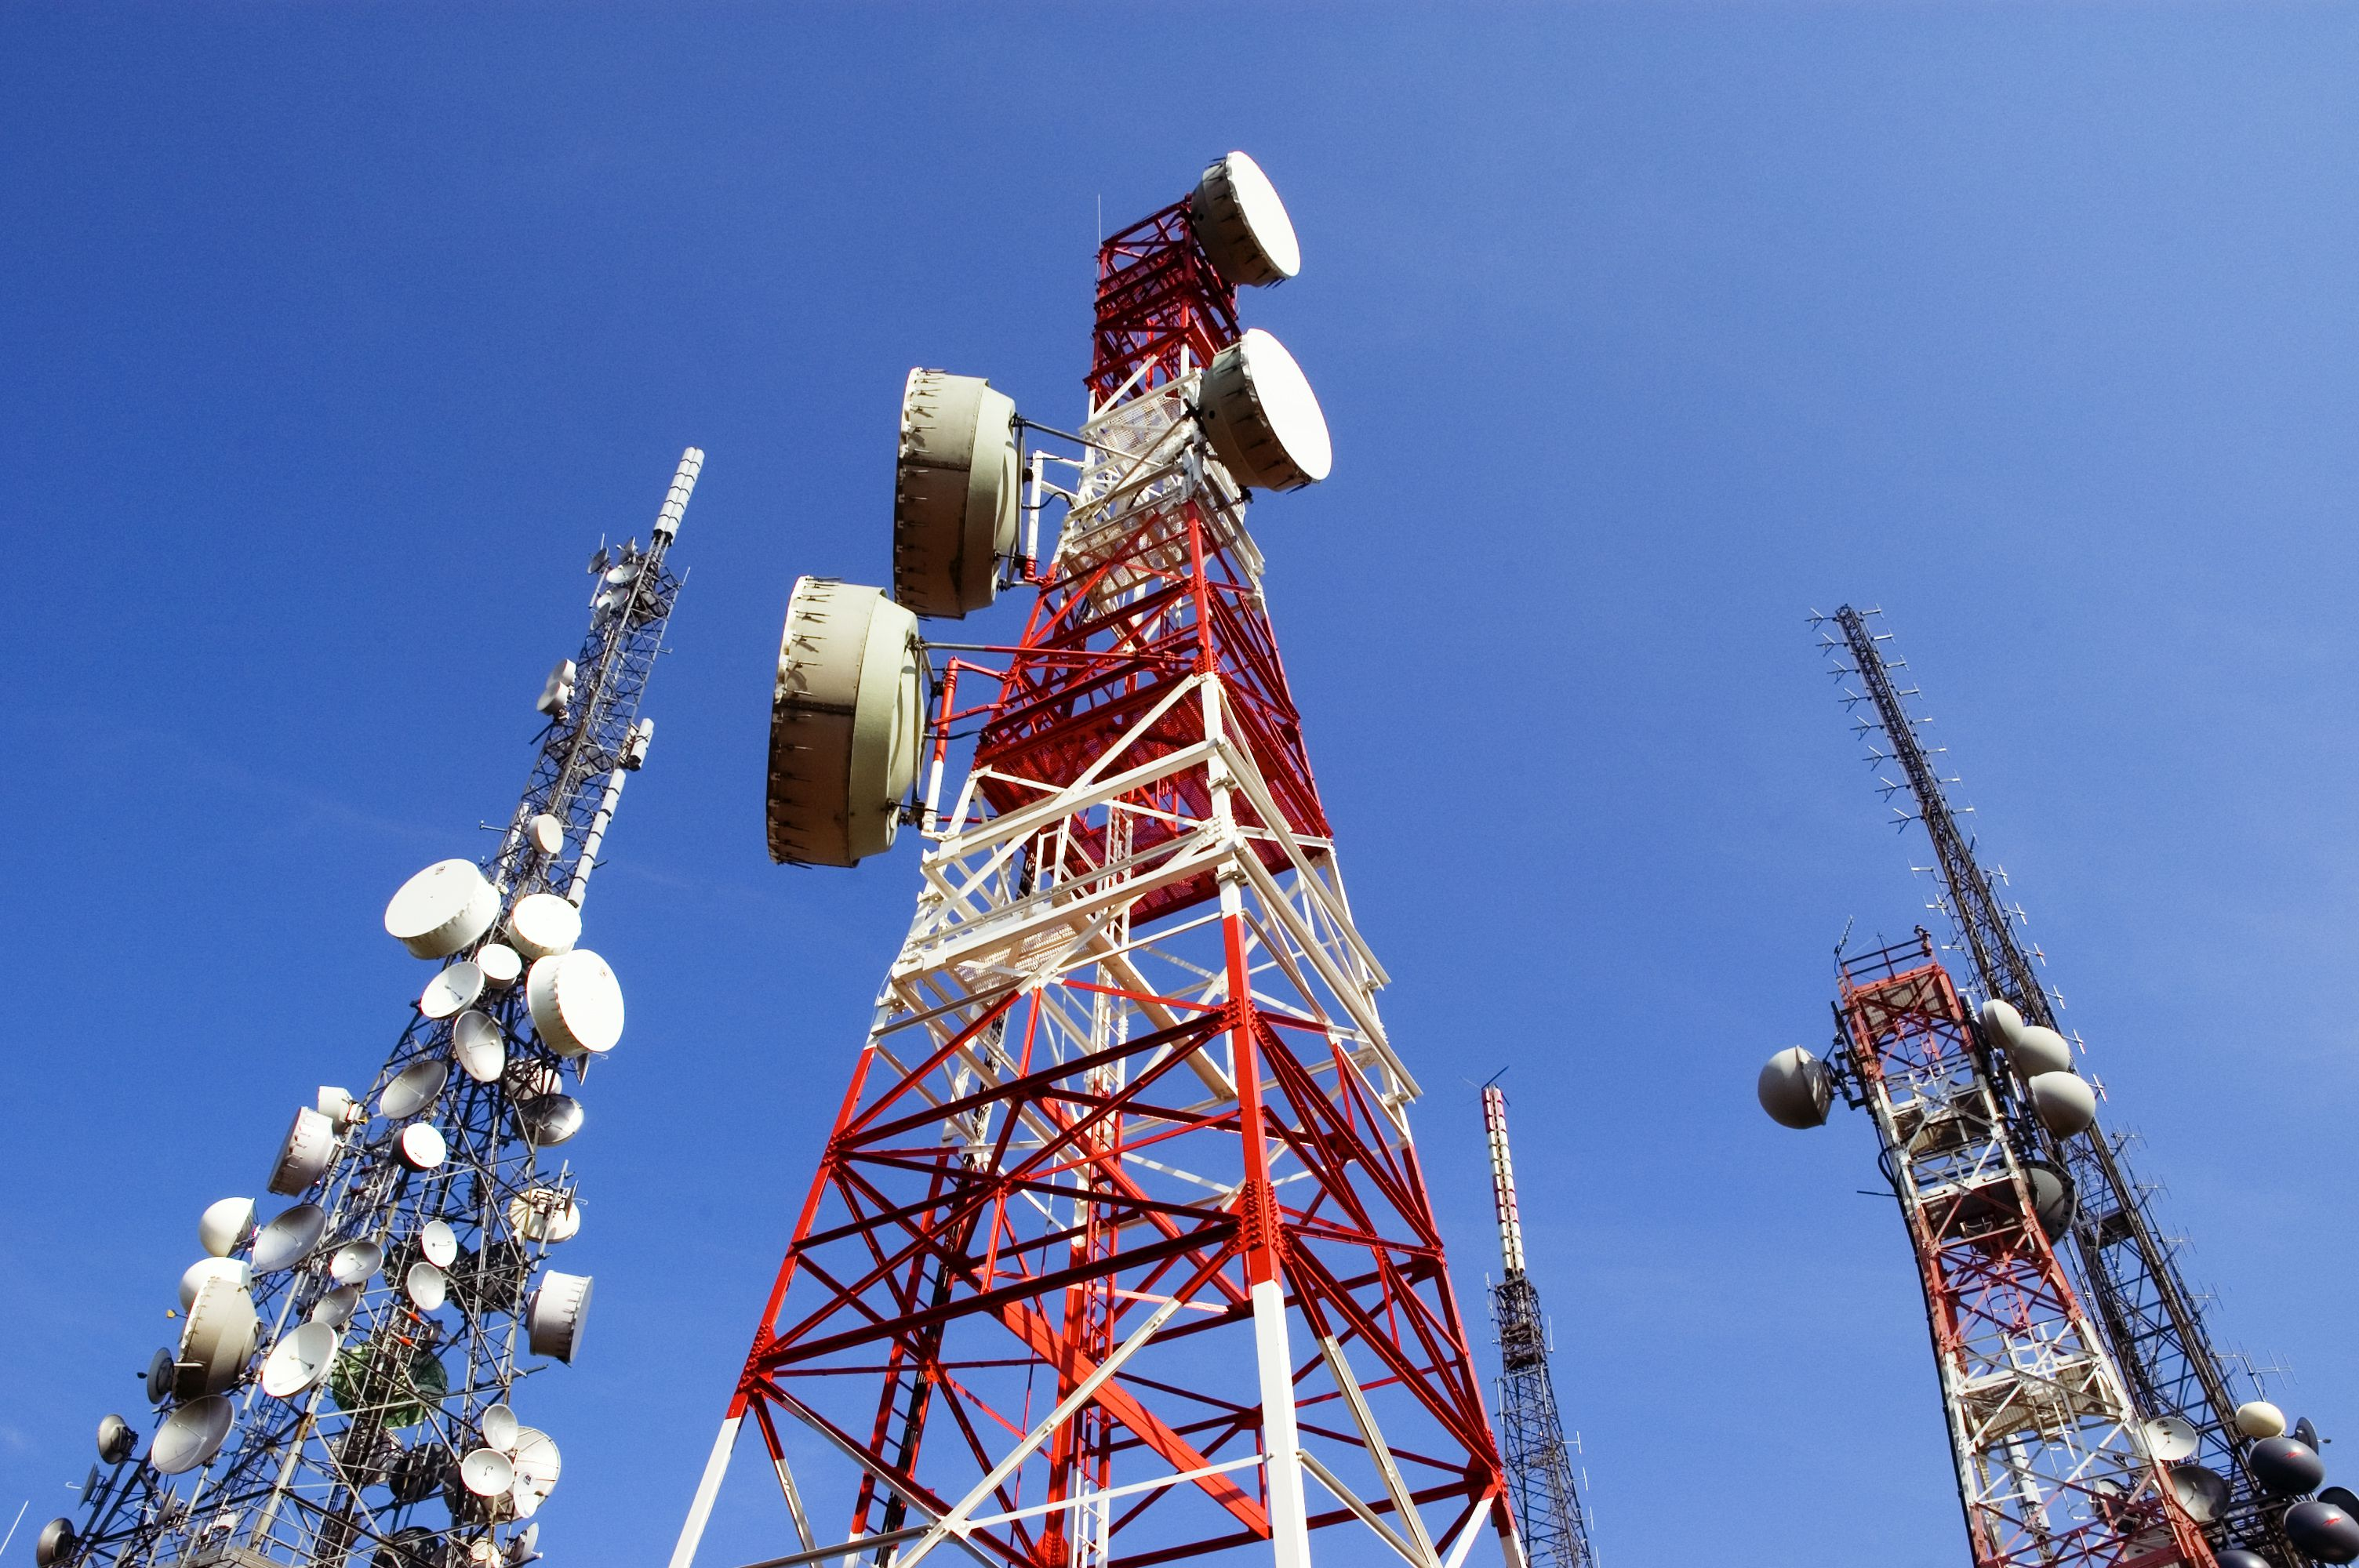 Telecommunications towers, blue sky with clouds